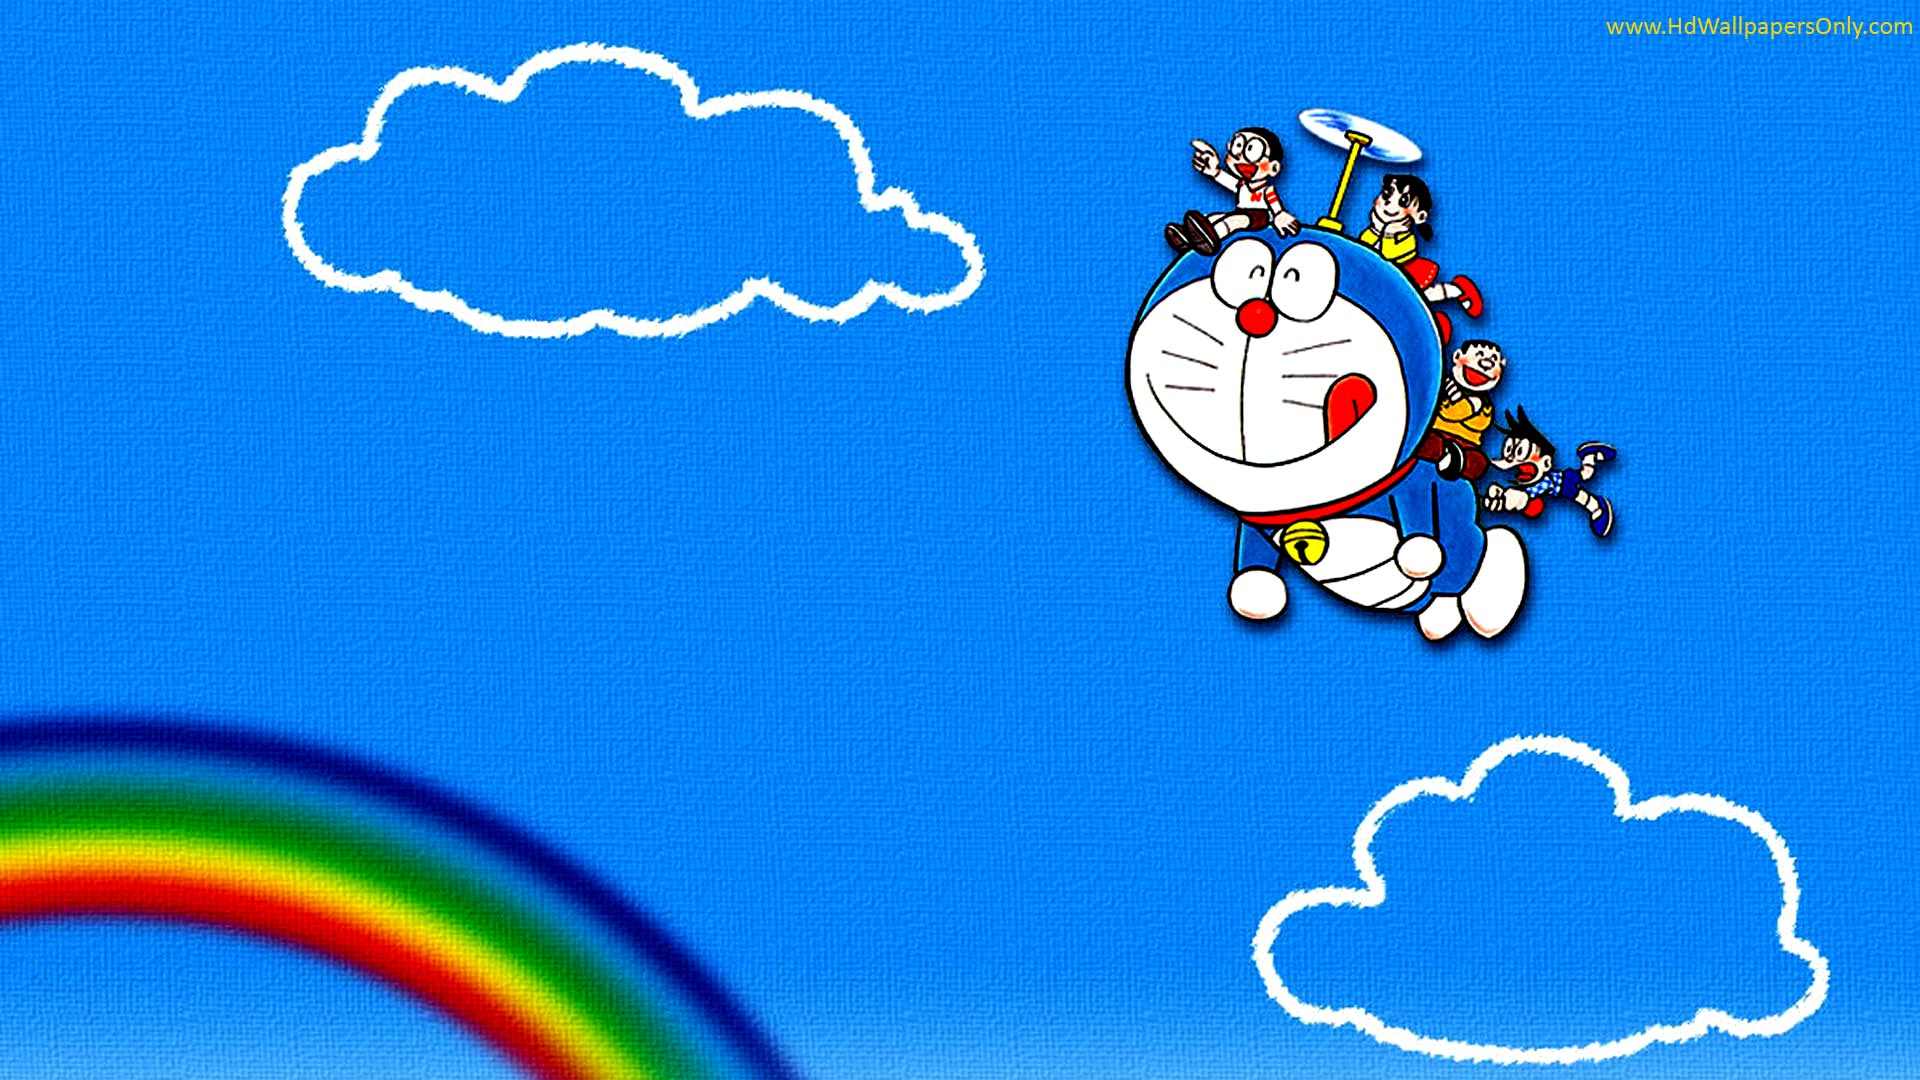 Doraemon Wallpaper Image Desktop